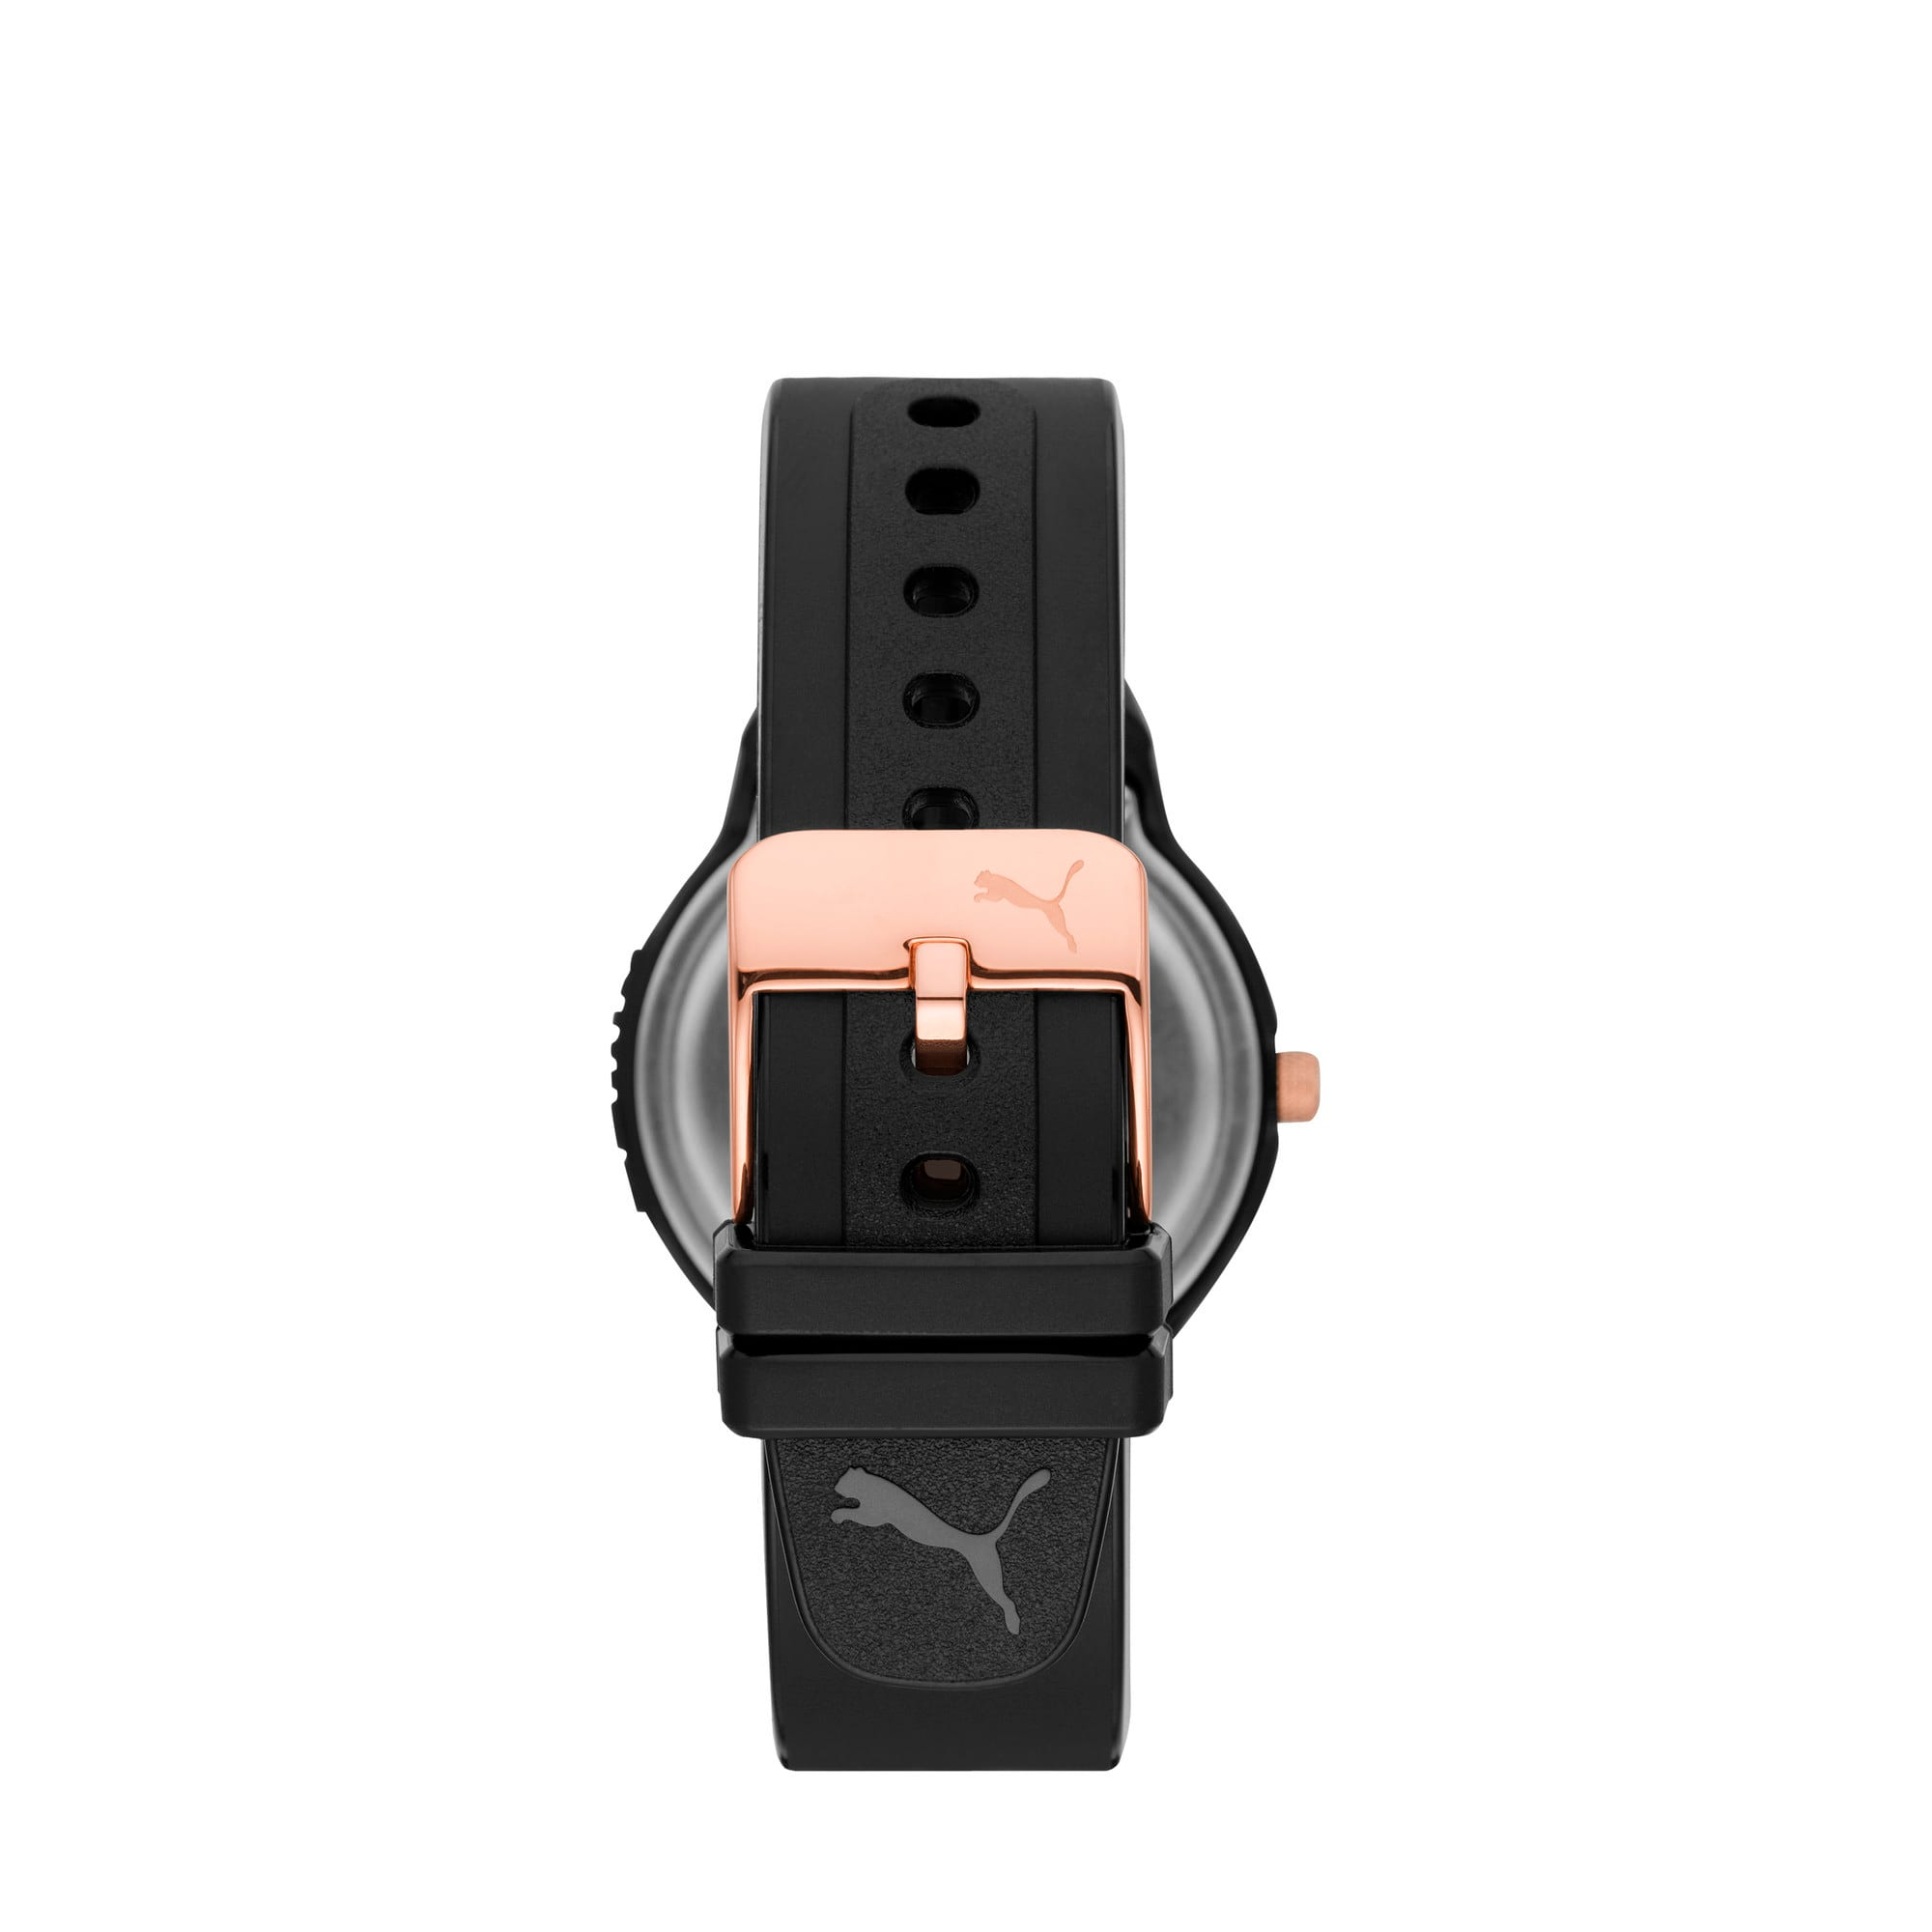 Thumbnail 2 of Reset v2 Watch, Black/Black, medium